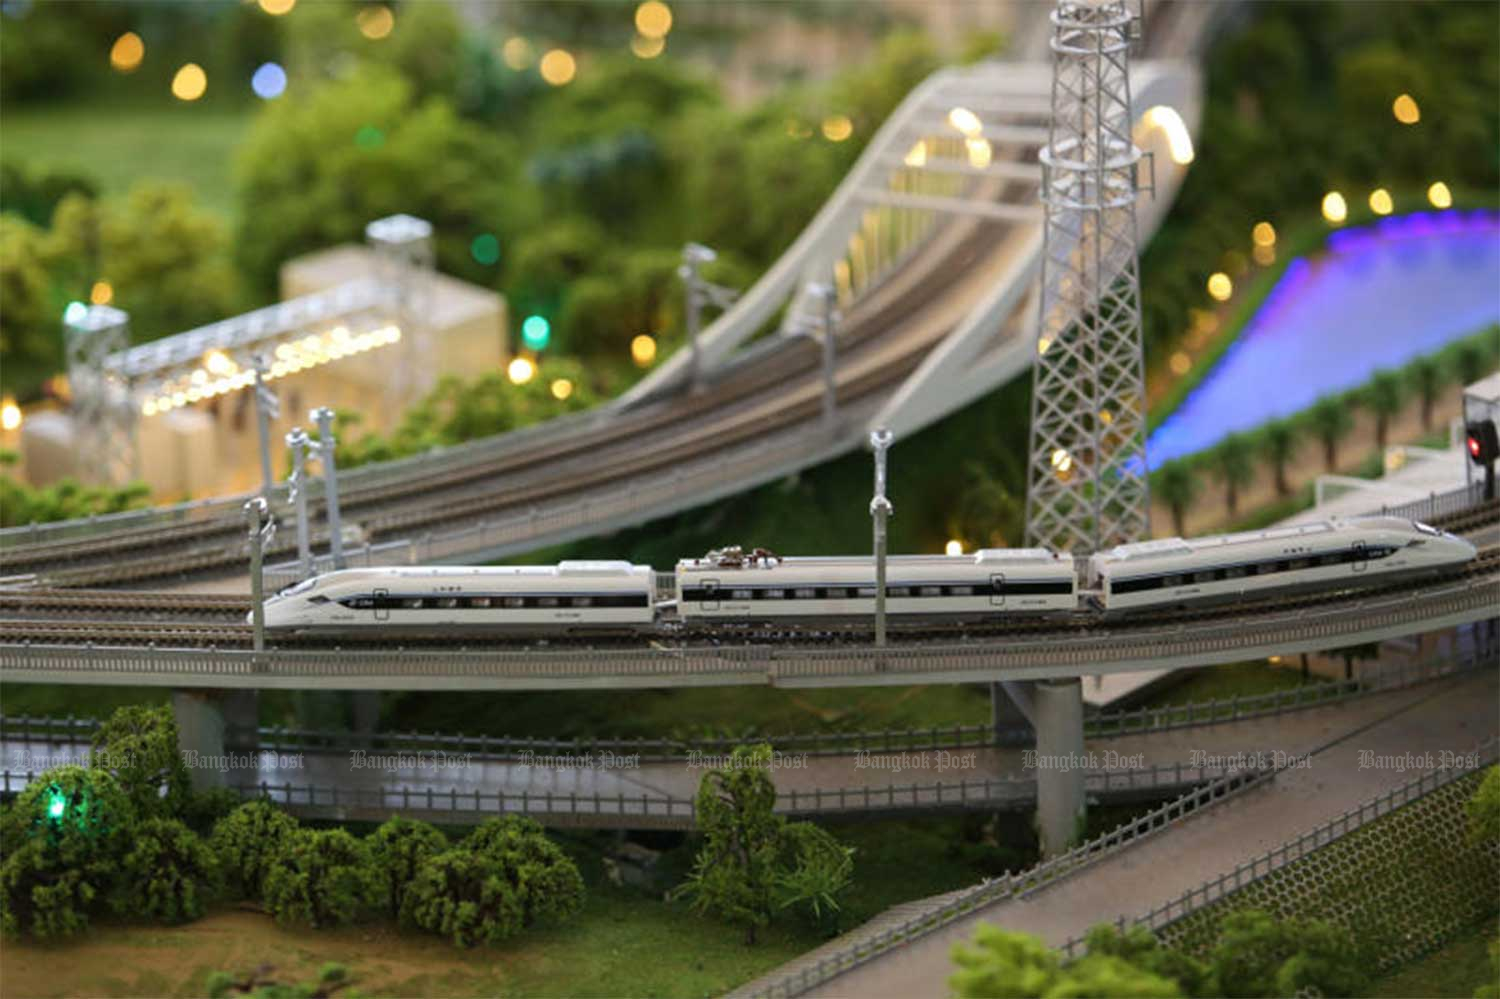 A model of the Thai-Chinese high-speed railway's first section, between Bangkok and Nakhon Ratchasima, put on display in December 2017 (File photo)